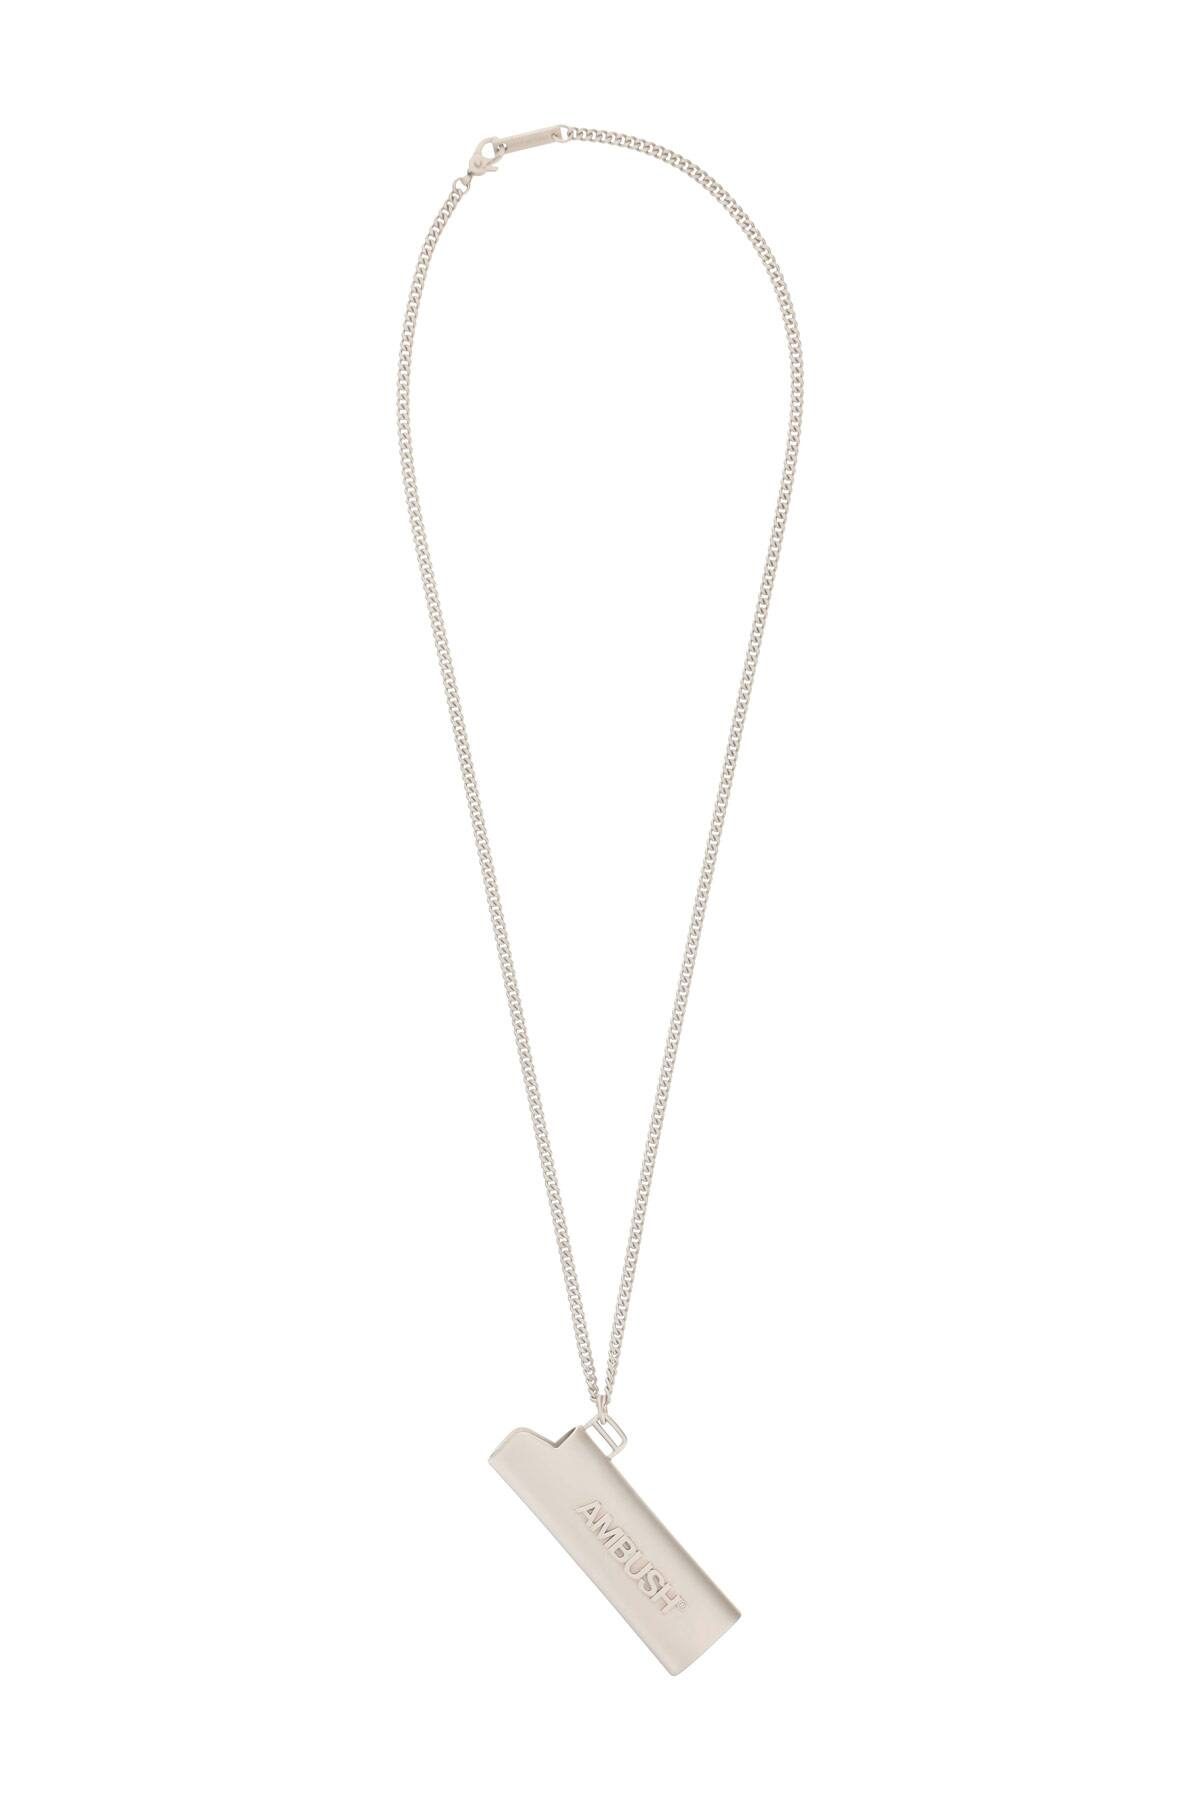 AMBUSH LIGHTER CASE UNISEX NECKLACE OS Silver